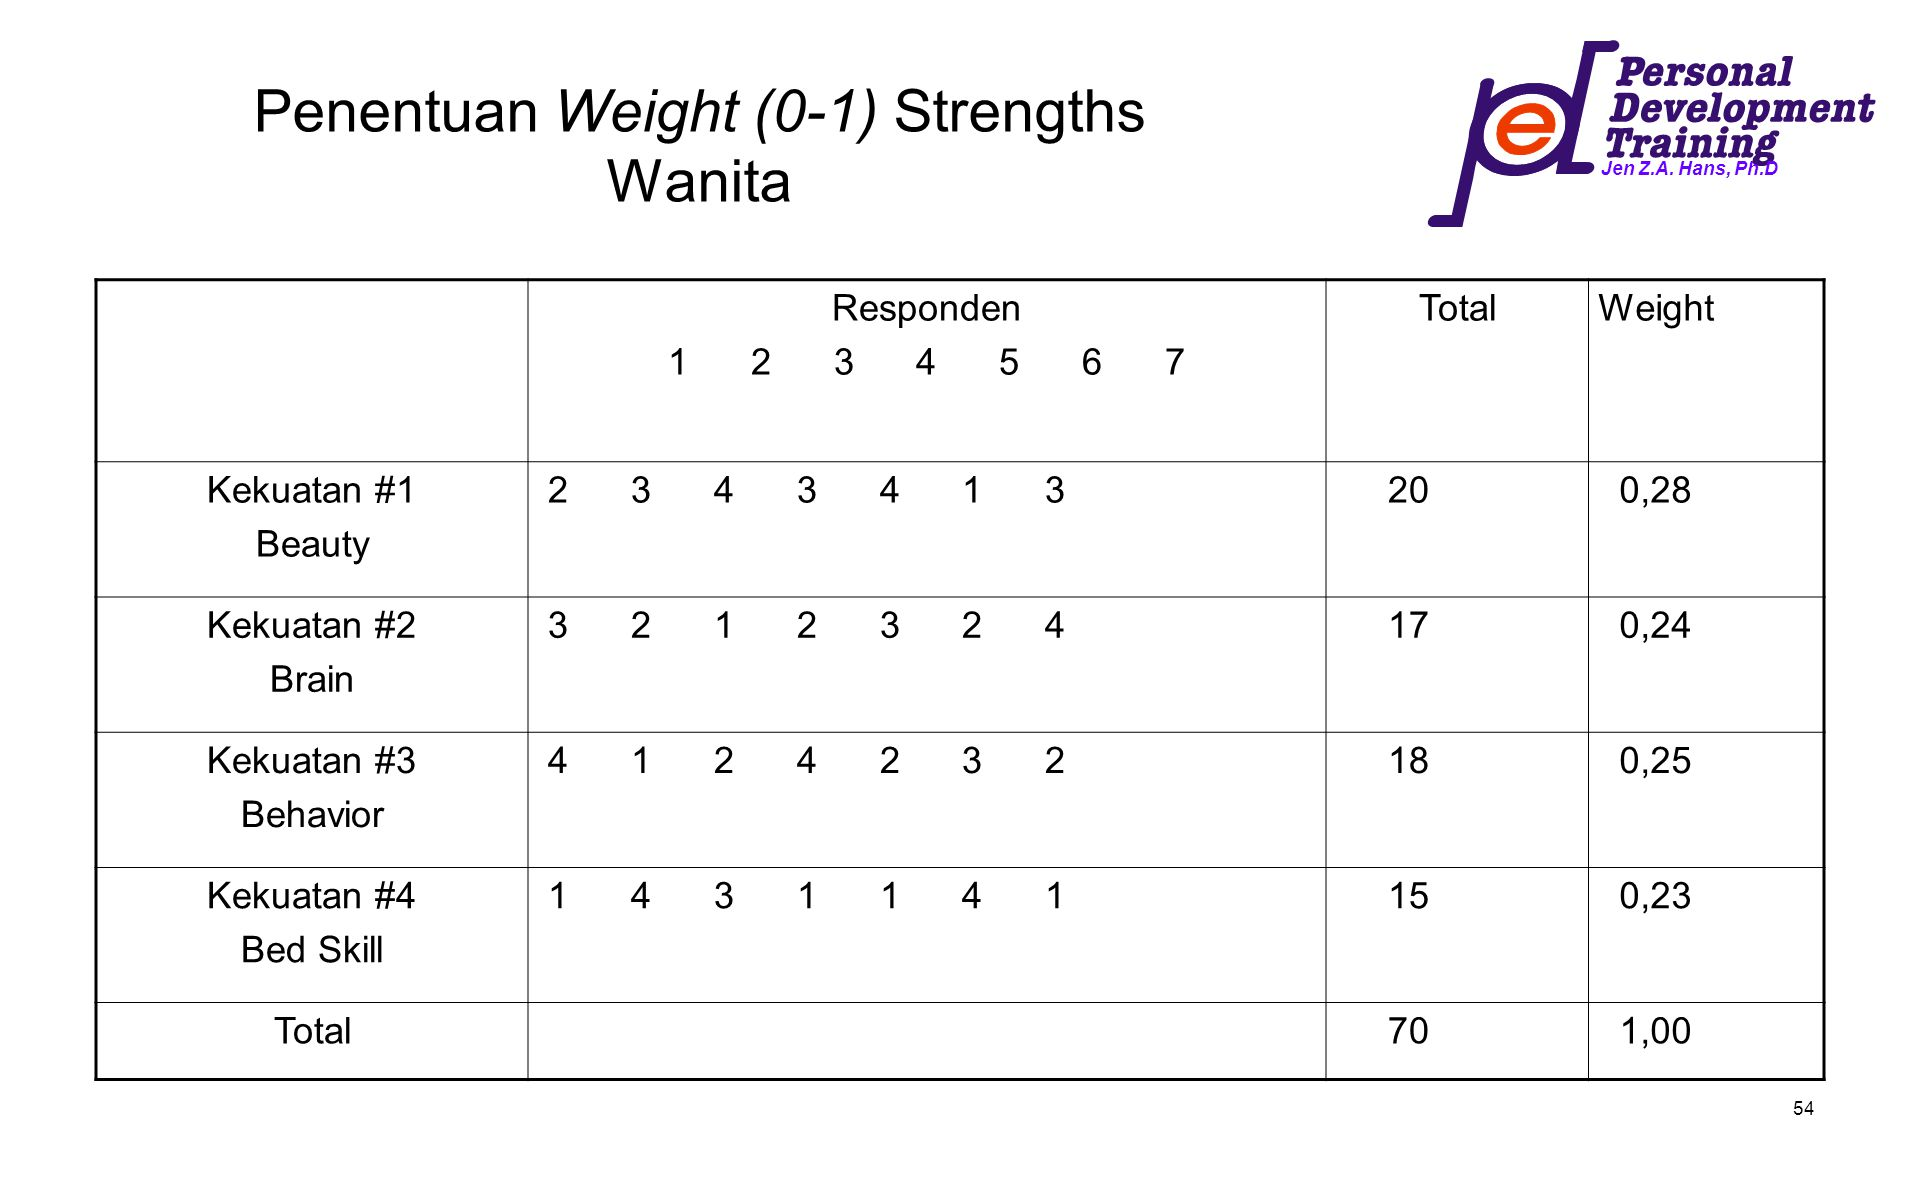 Penentuan Weight (0-1) Strengths Wanita